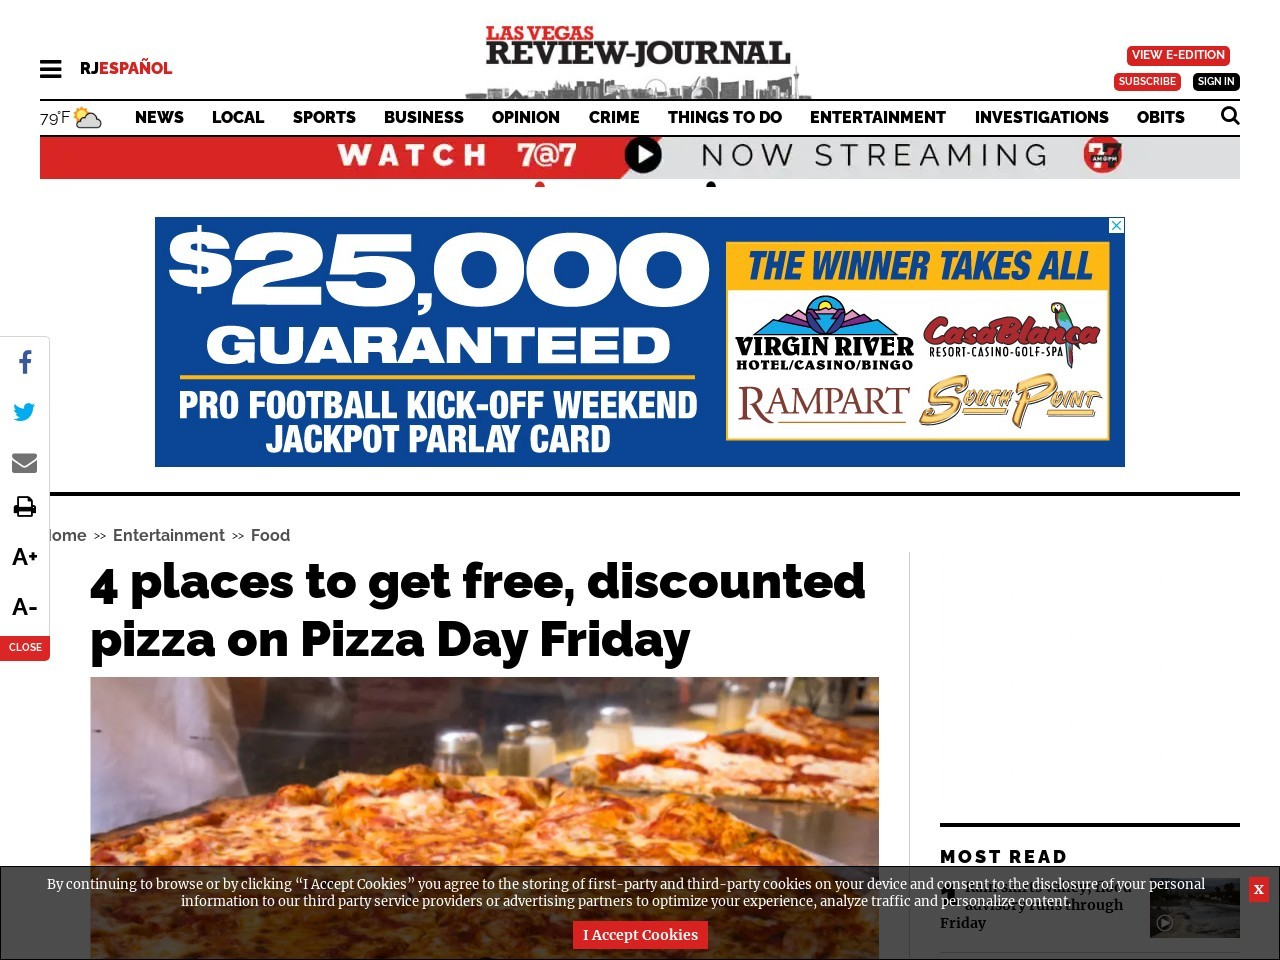 4 places to get free, discounted pizza on Pizza Day Friday